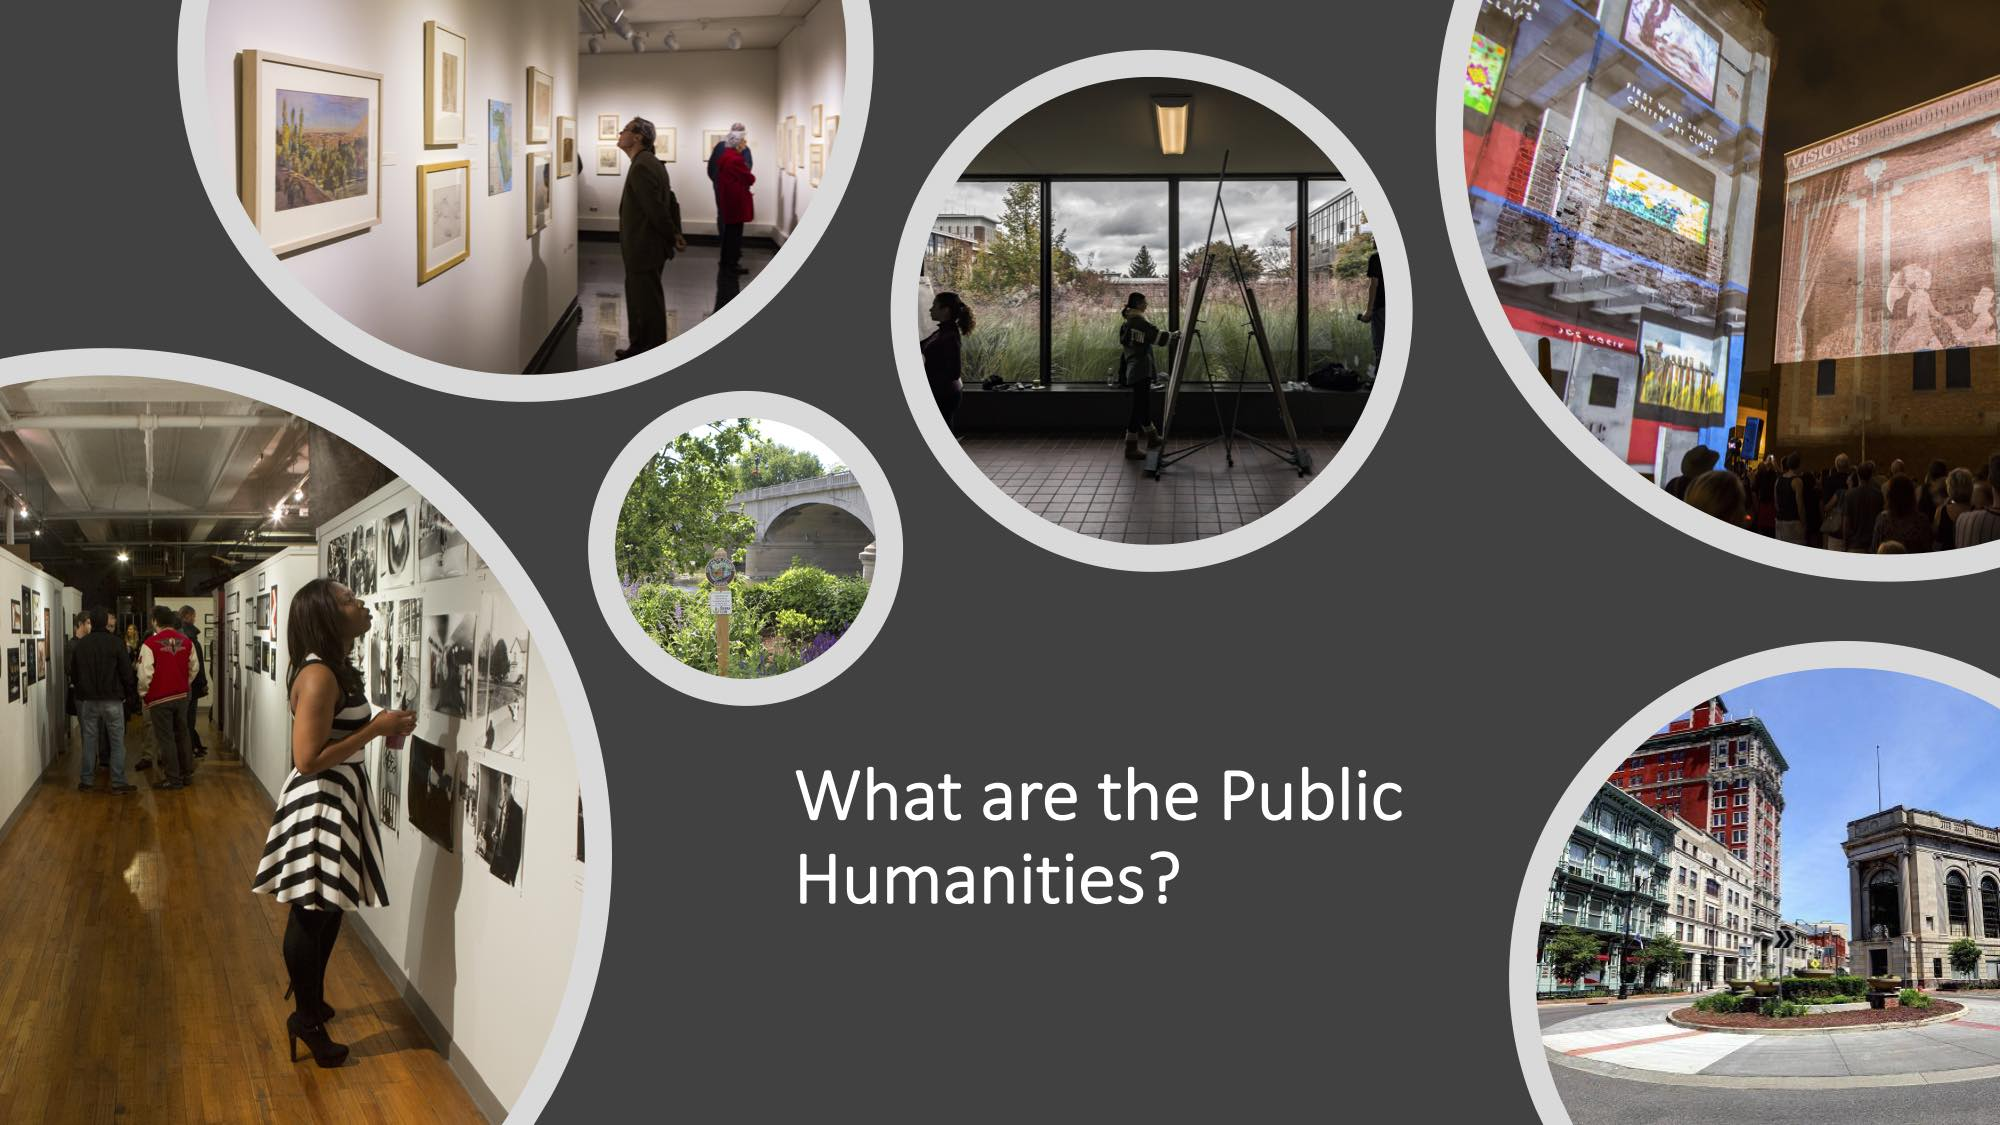 What are the Public Humanities